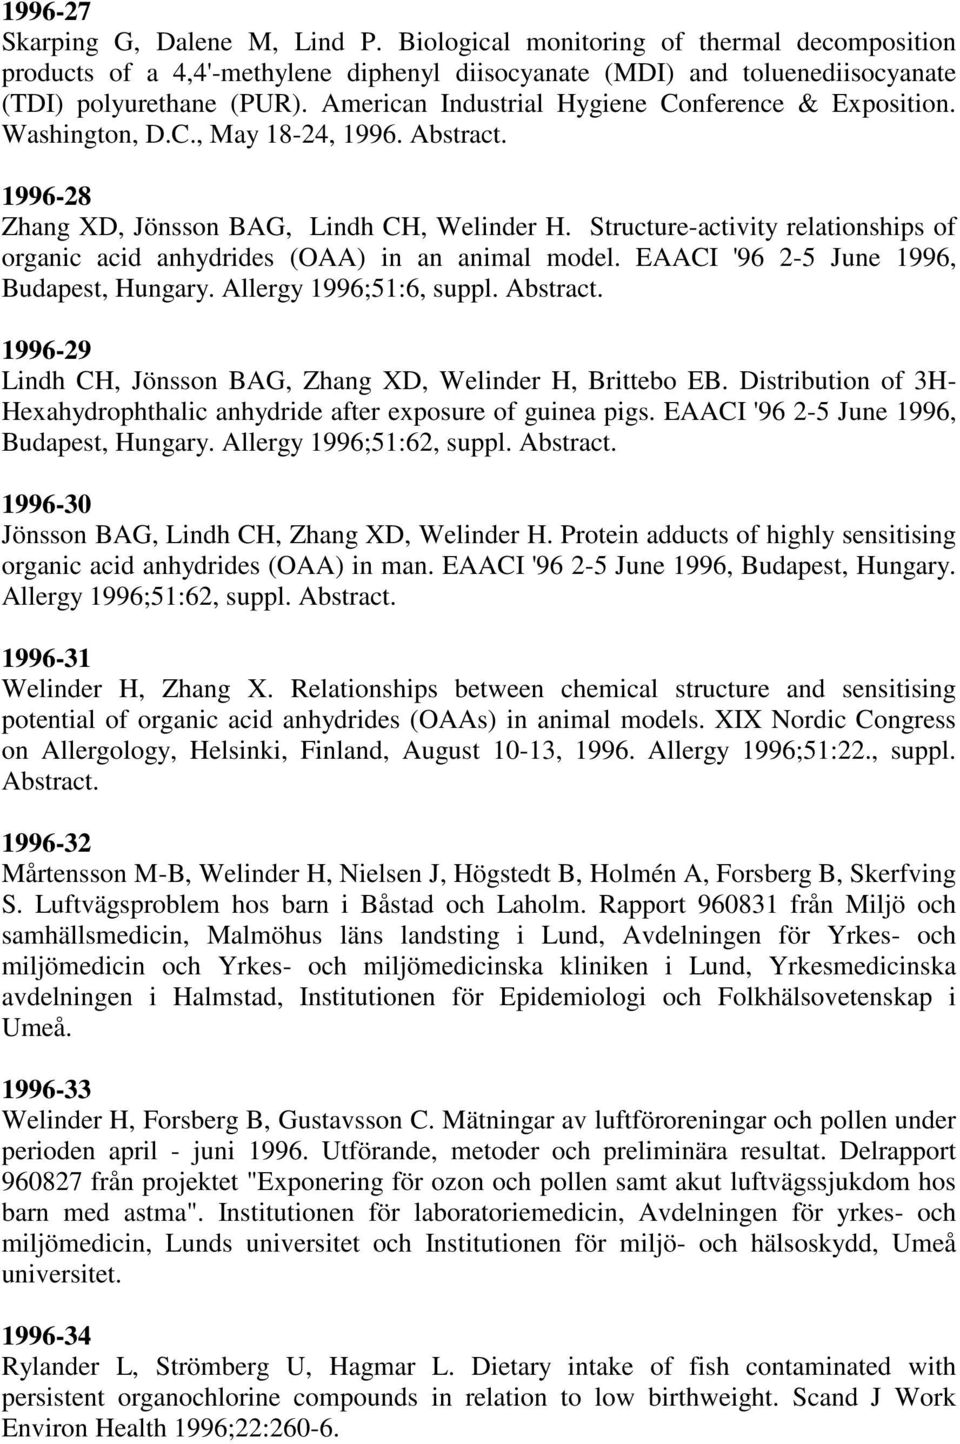 Structure-activity relationships of organic acid anhydrides (OAA) in an animal model. EAACI '96 2-5 June 1996, Budapest, Hungary. Allergy 1996;51:6, suppl. Abstract.